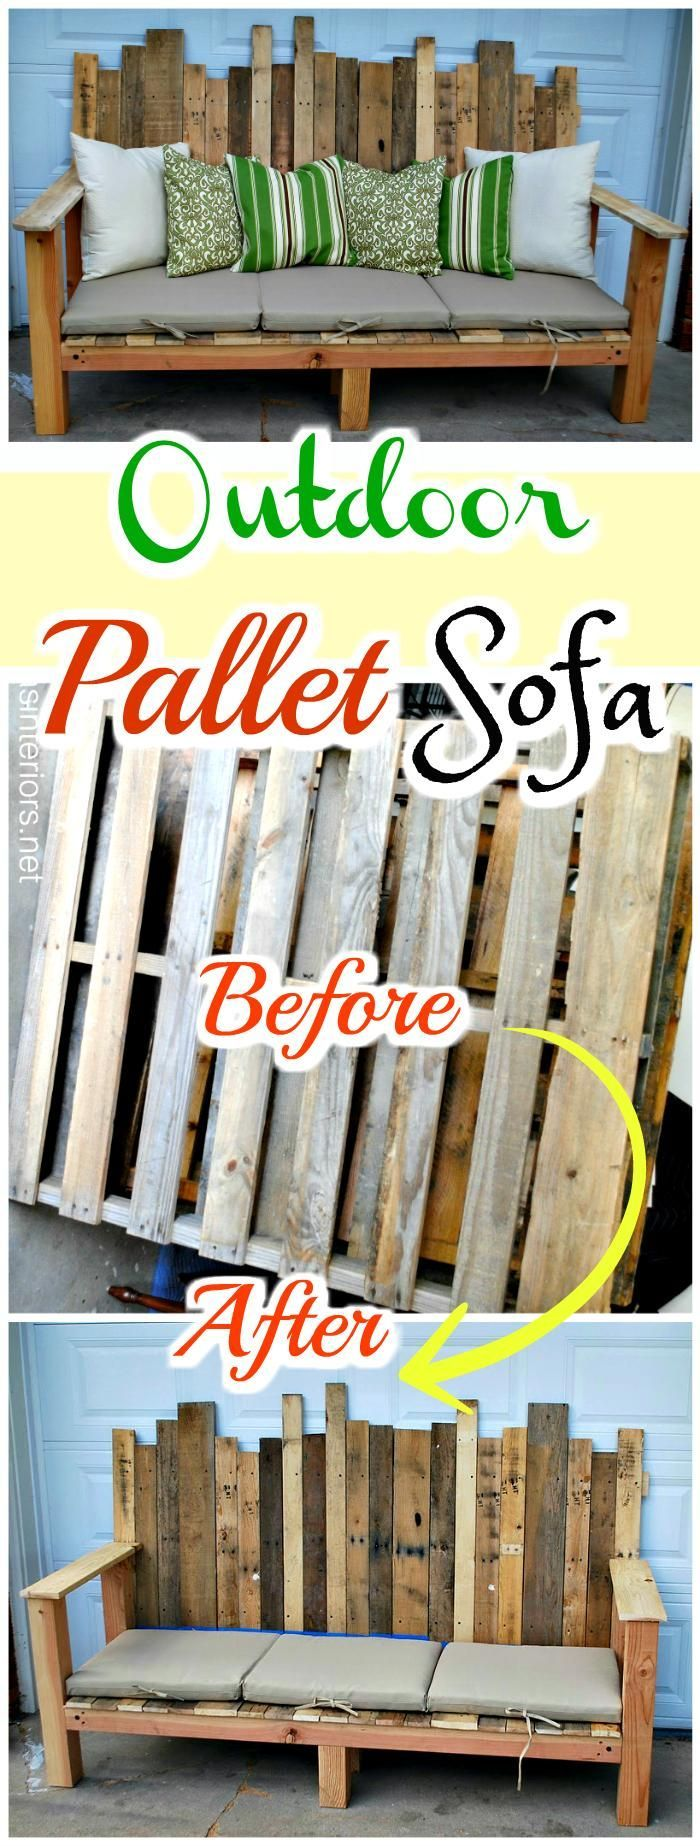 Hand-Built Outdoor Pallet Sofa - 150 Best DIY Pallet Projects and Pallet Furniture Crafts - Page 14 of 75 - DIY & Crafts